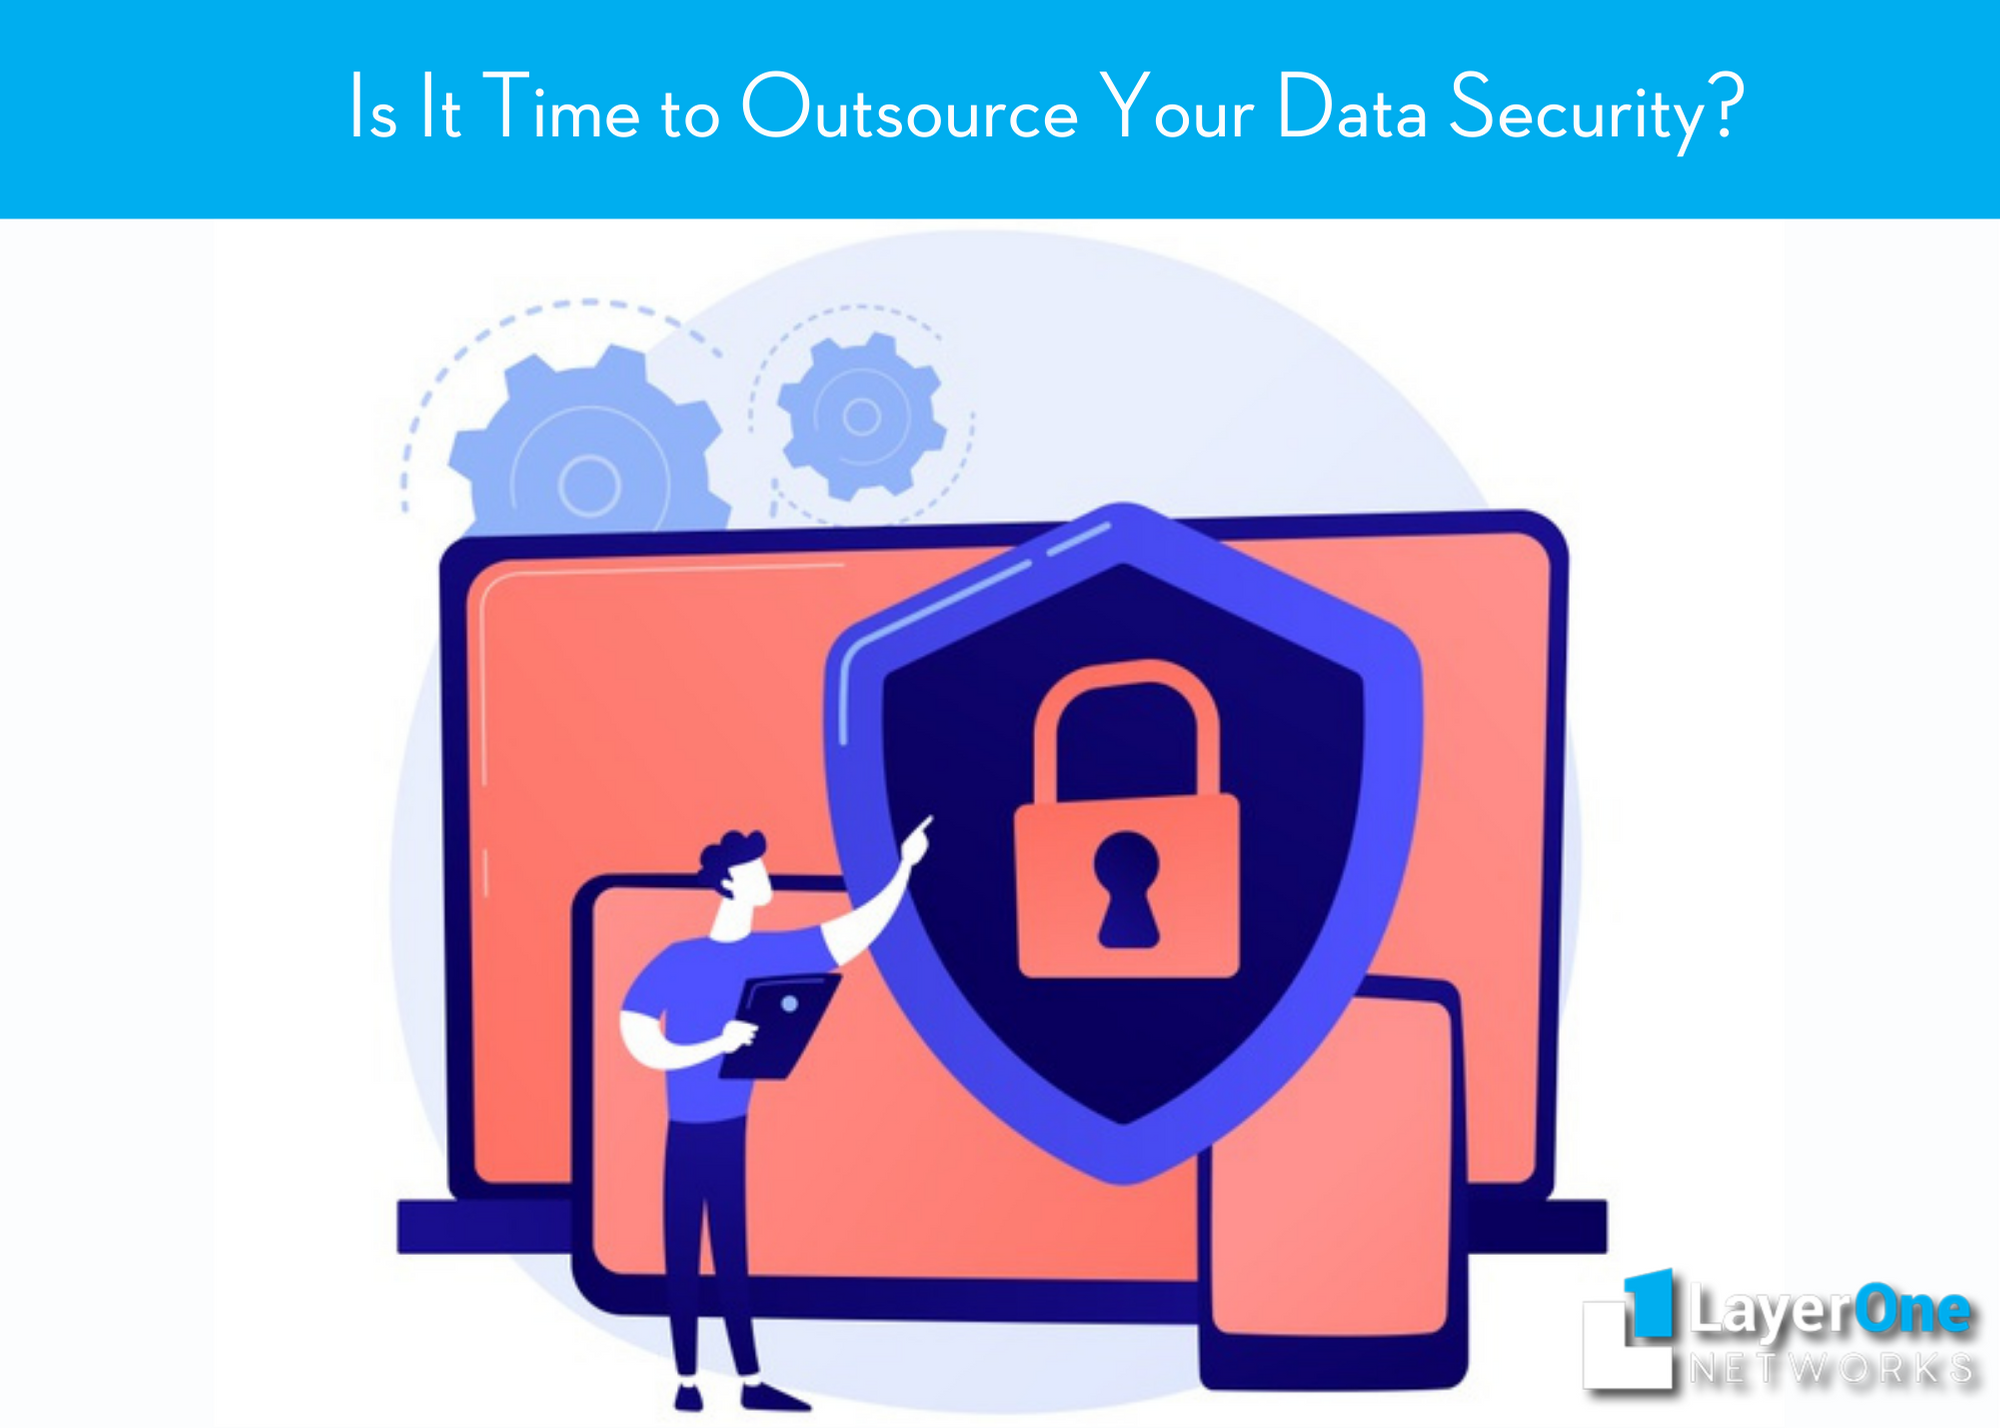 is-it-time-to-outsource-your-data-security